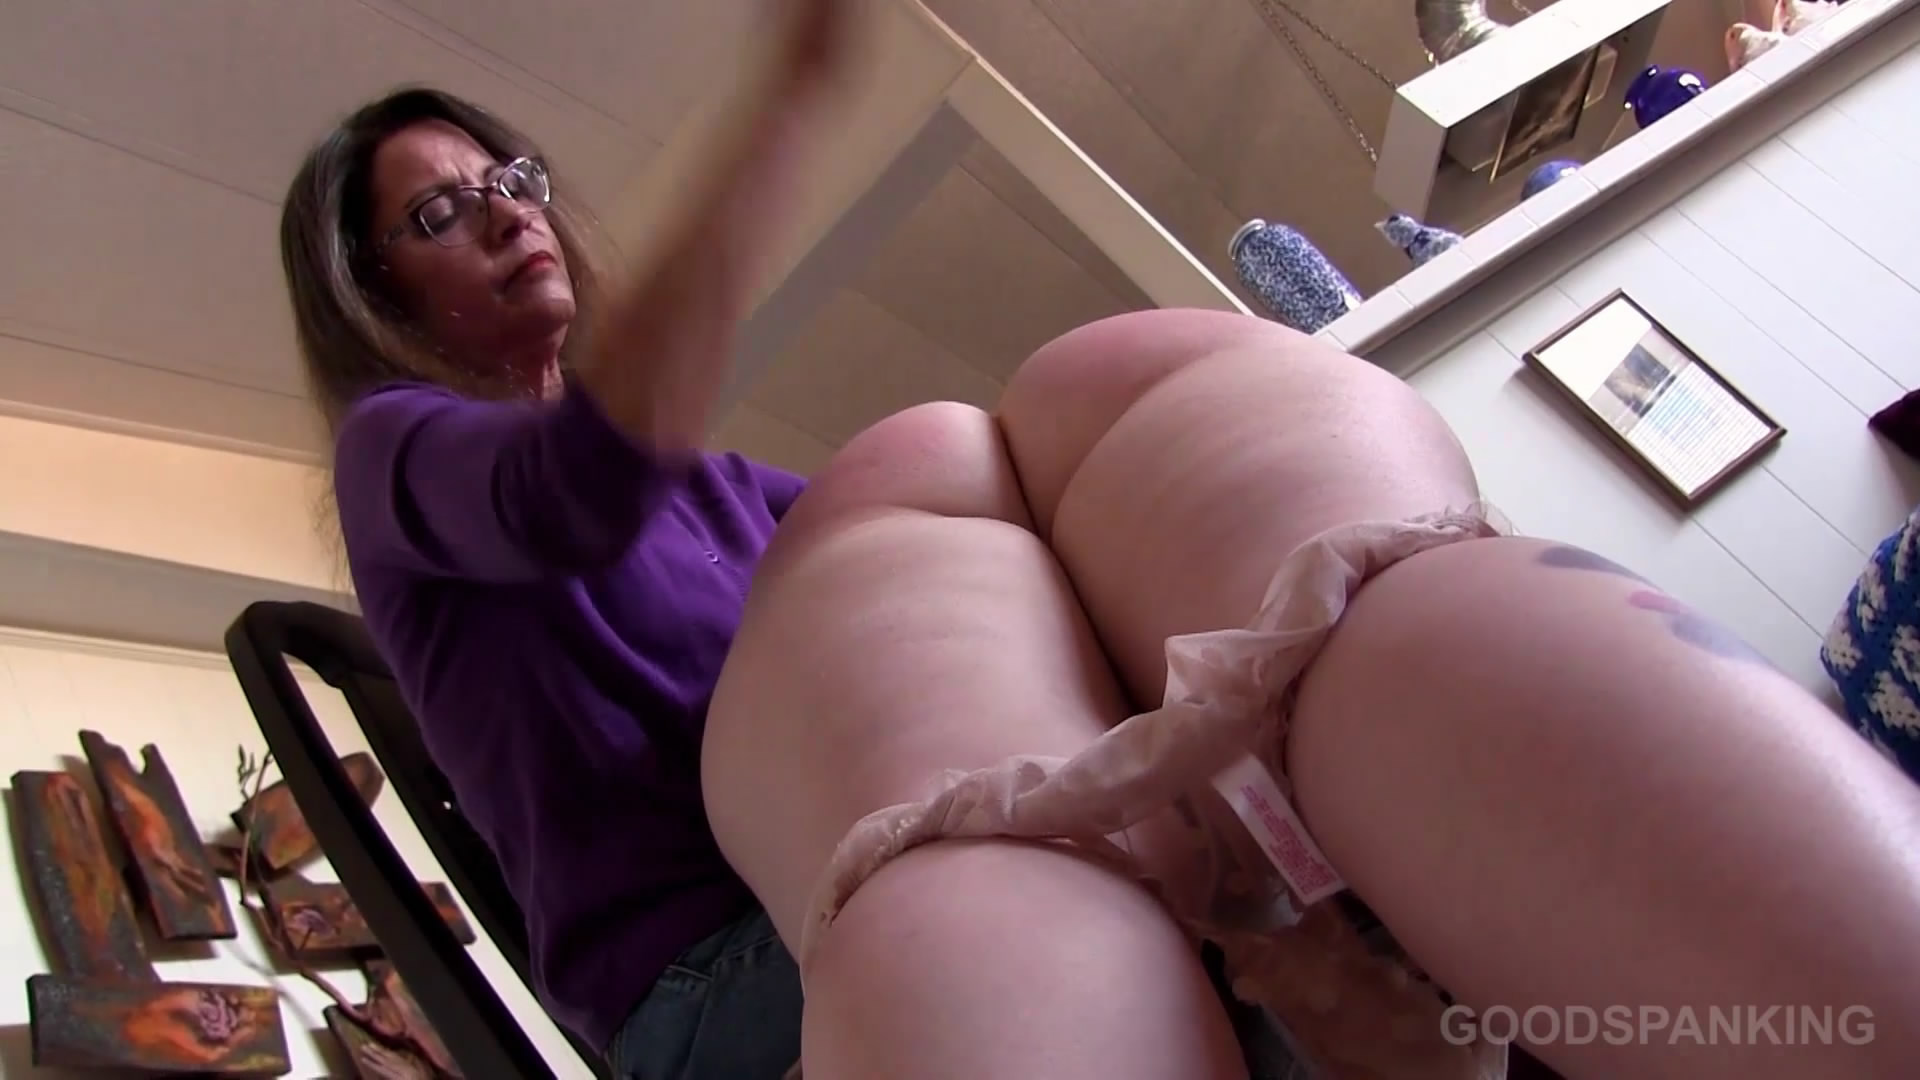 Good Spanking – MP4/Full HD – CHELSEA PFEIFFER,GINGER SPARKS – THE LAST LAUGH